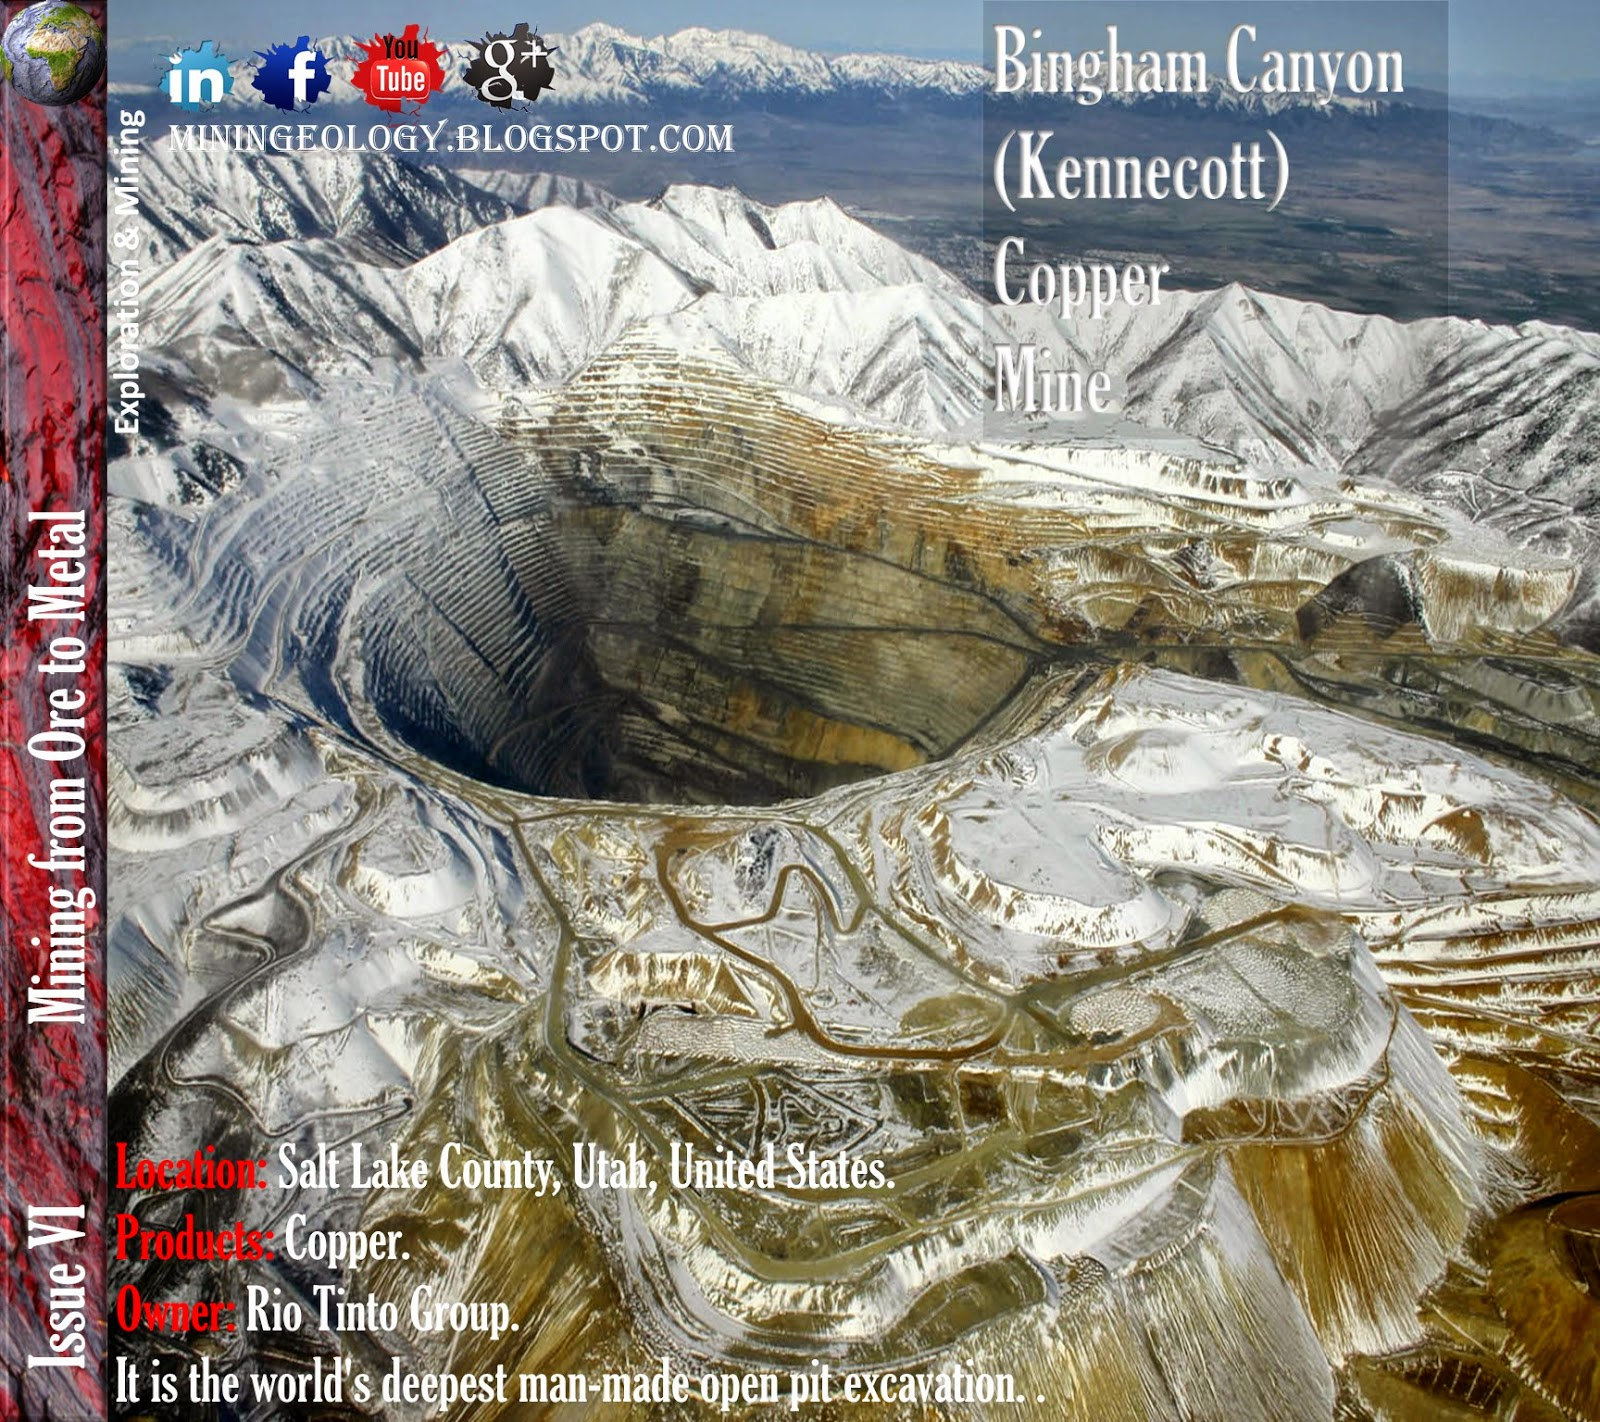 Bingham Canyon (Kennecott) Copper Mine